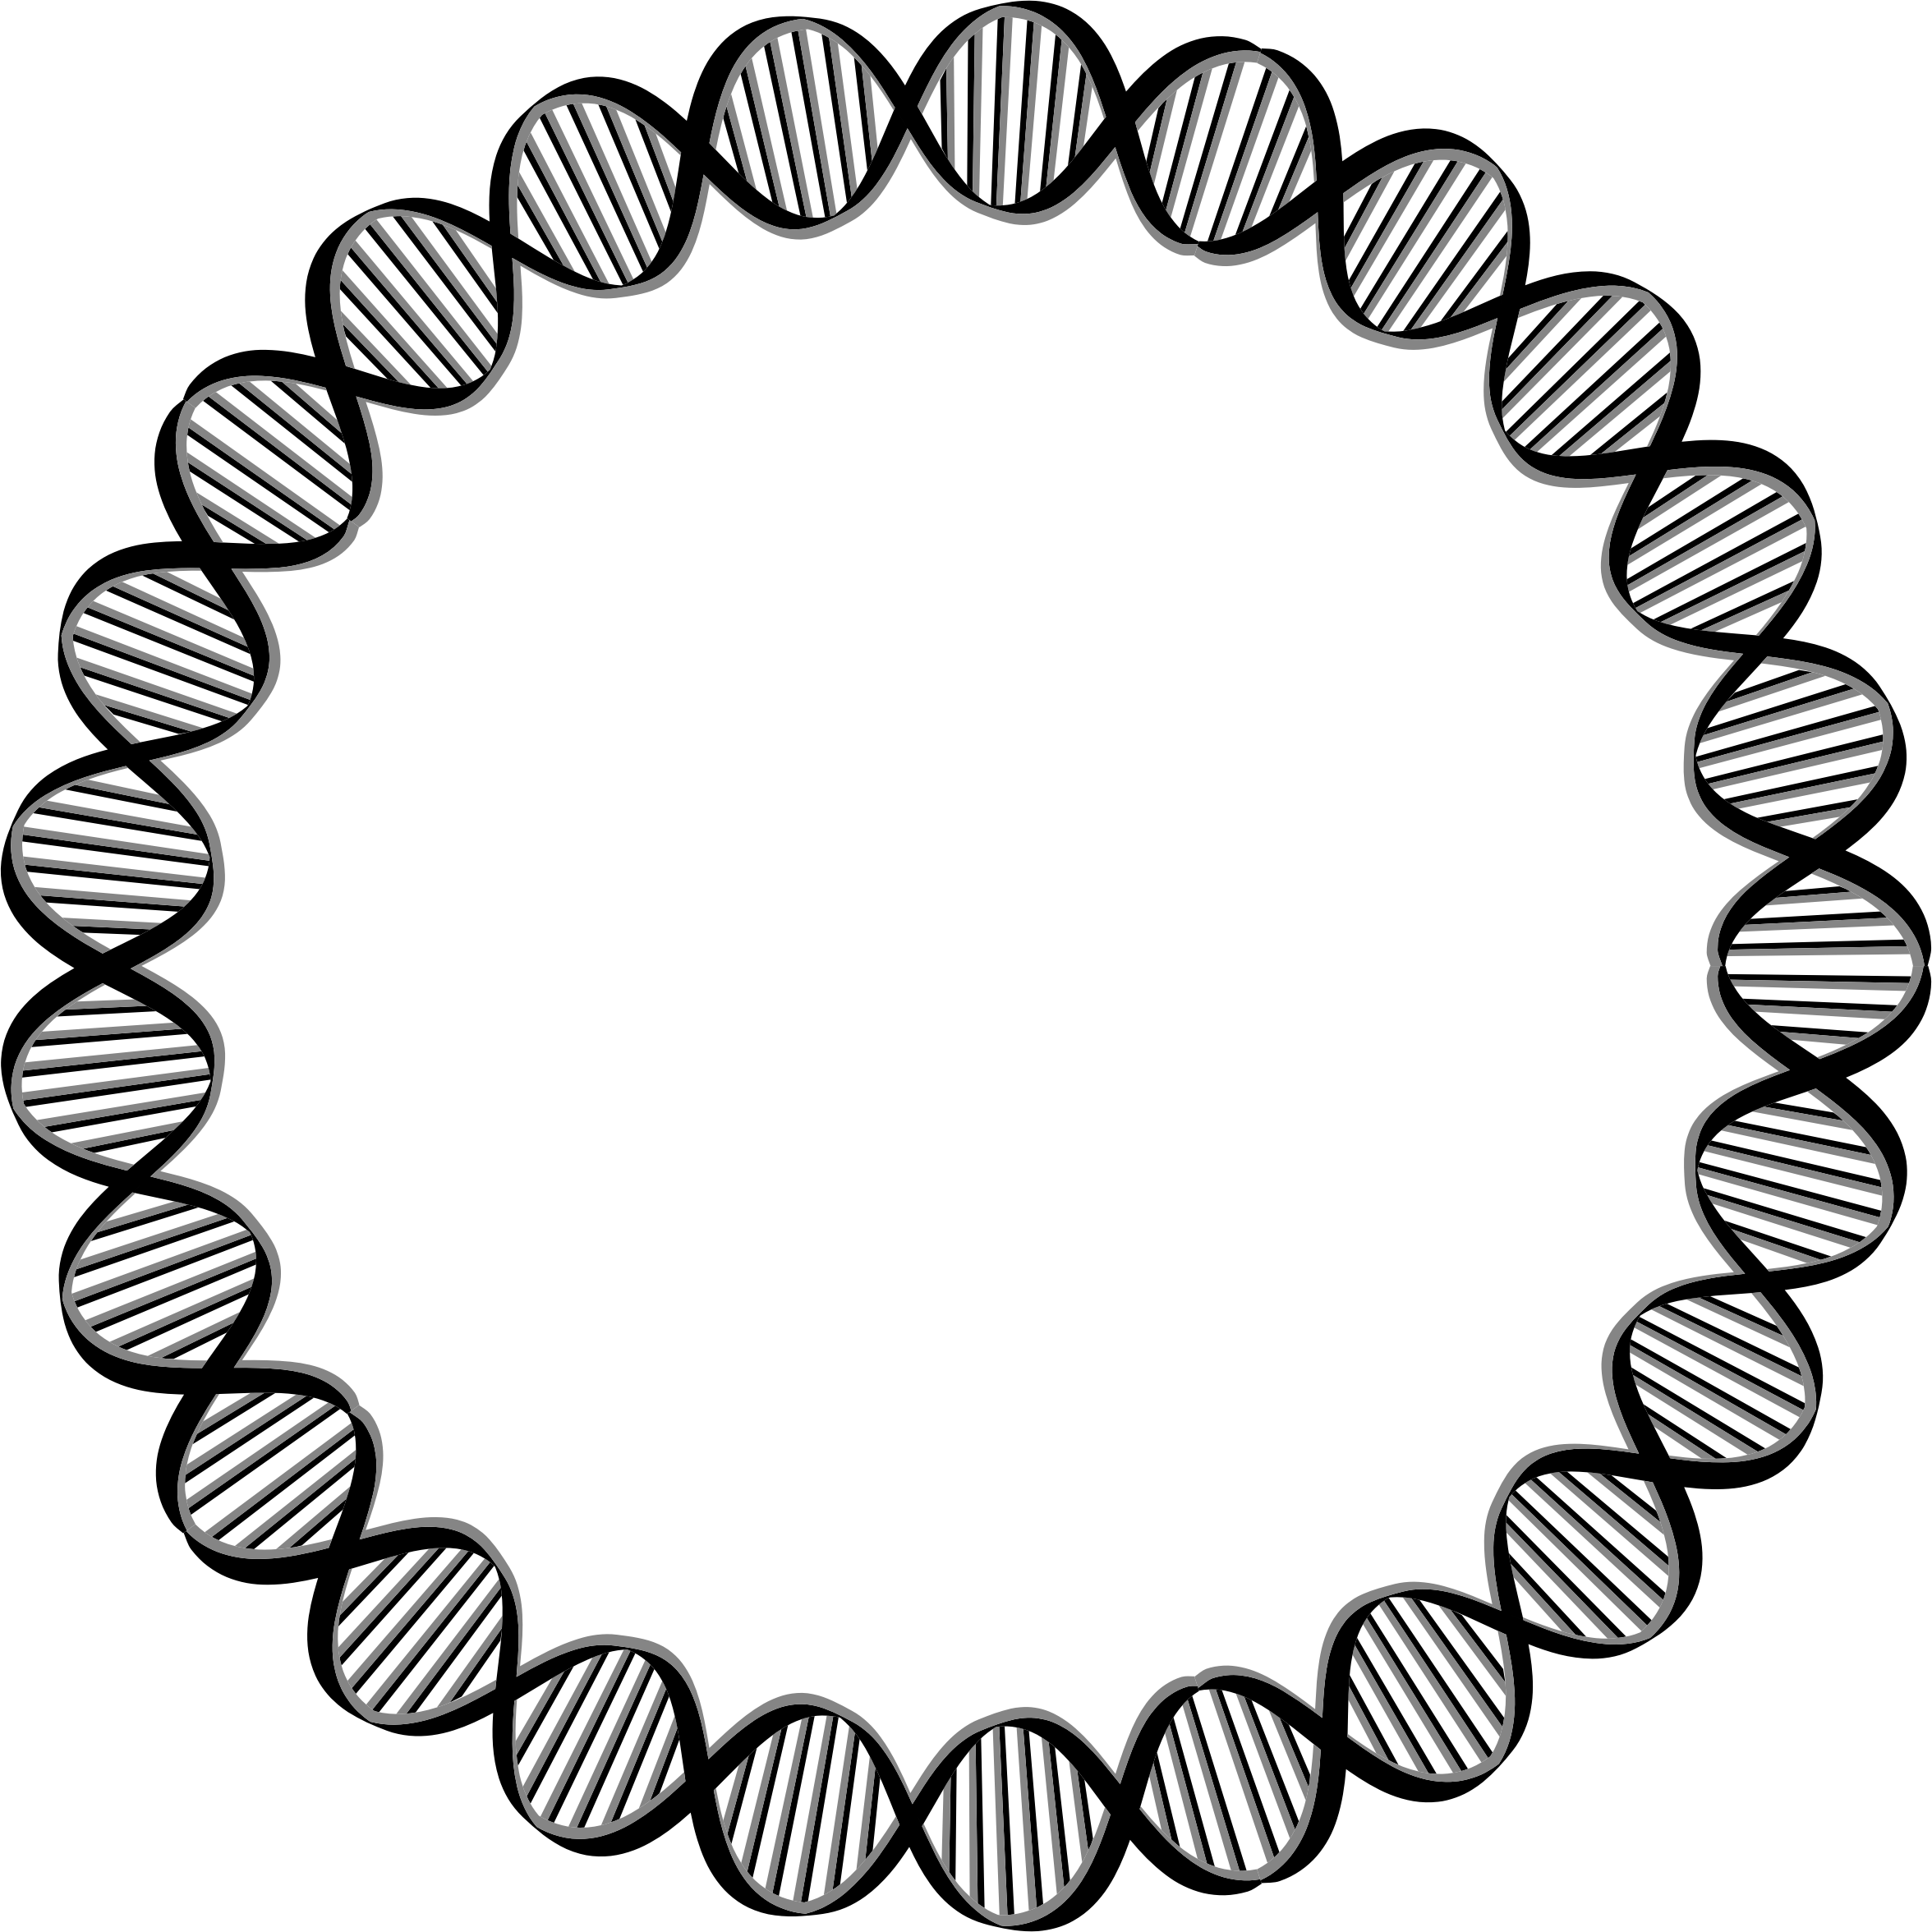 Dna large big image. Circle clipart science